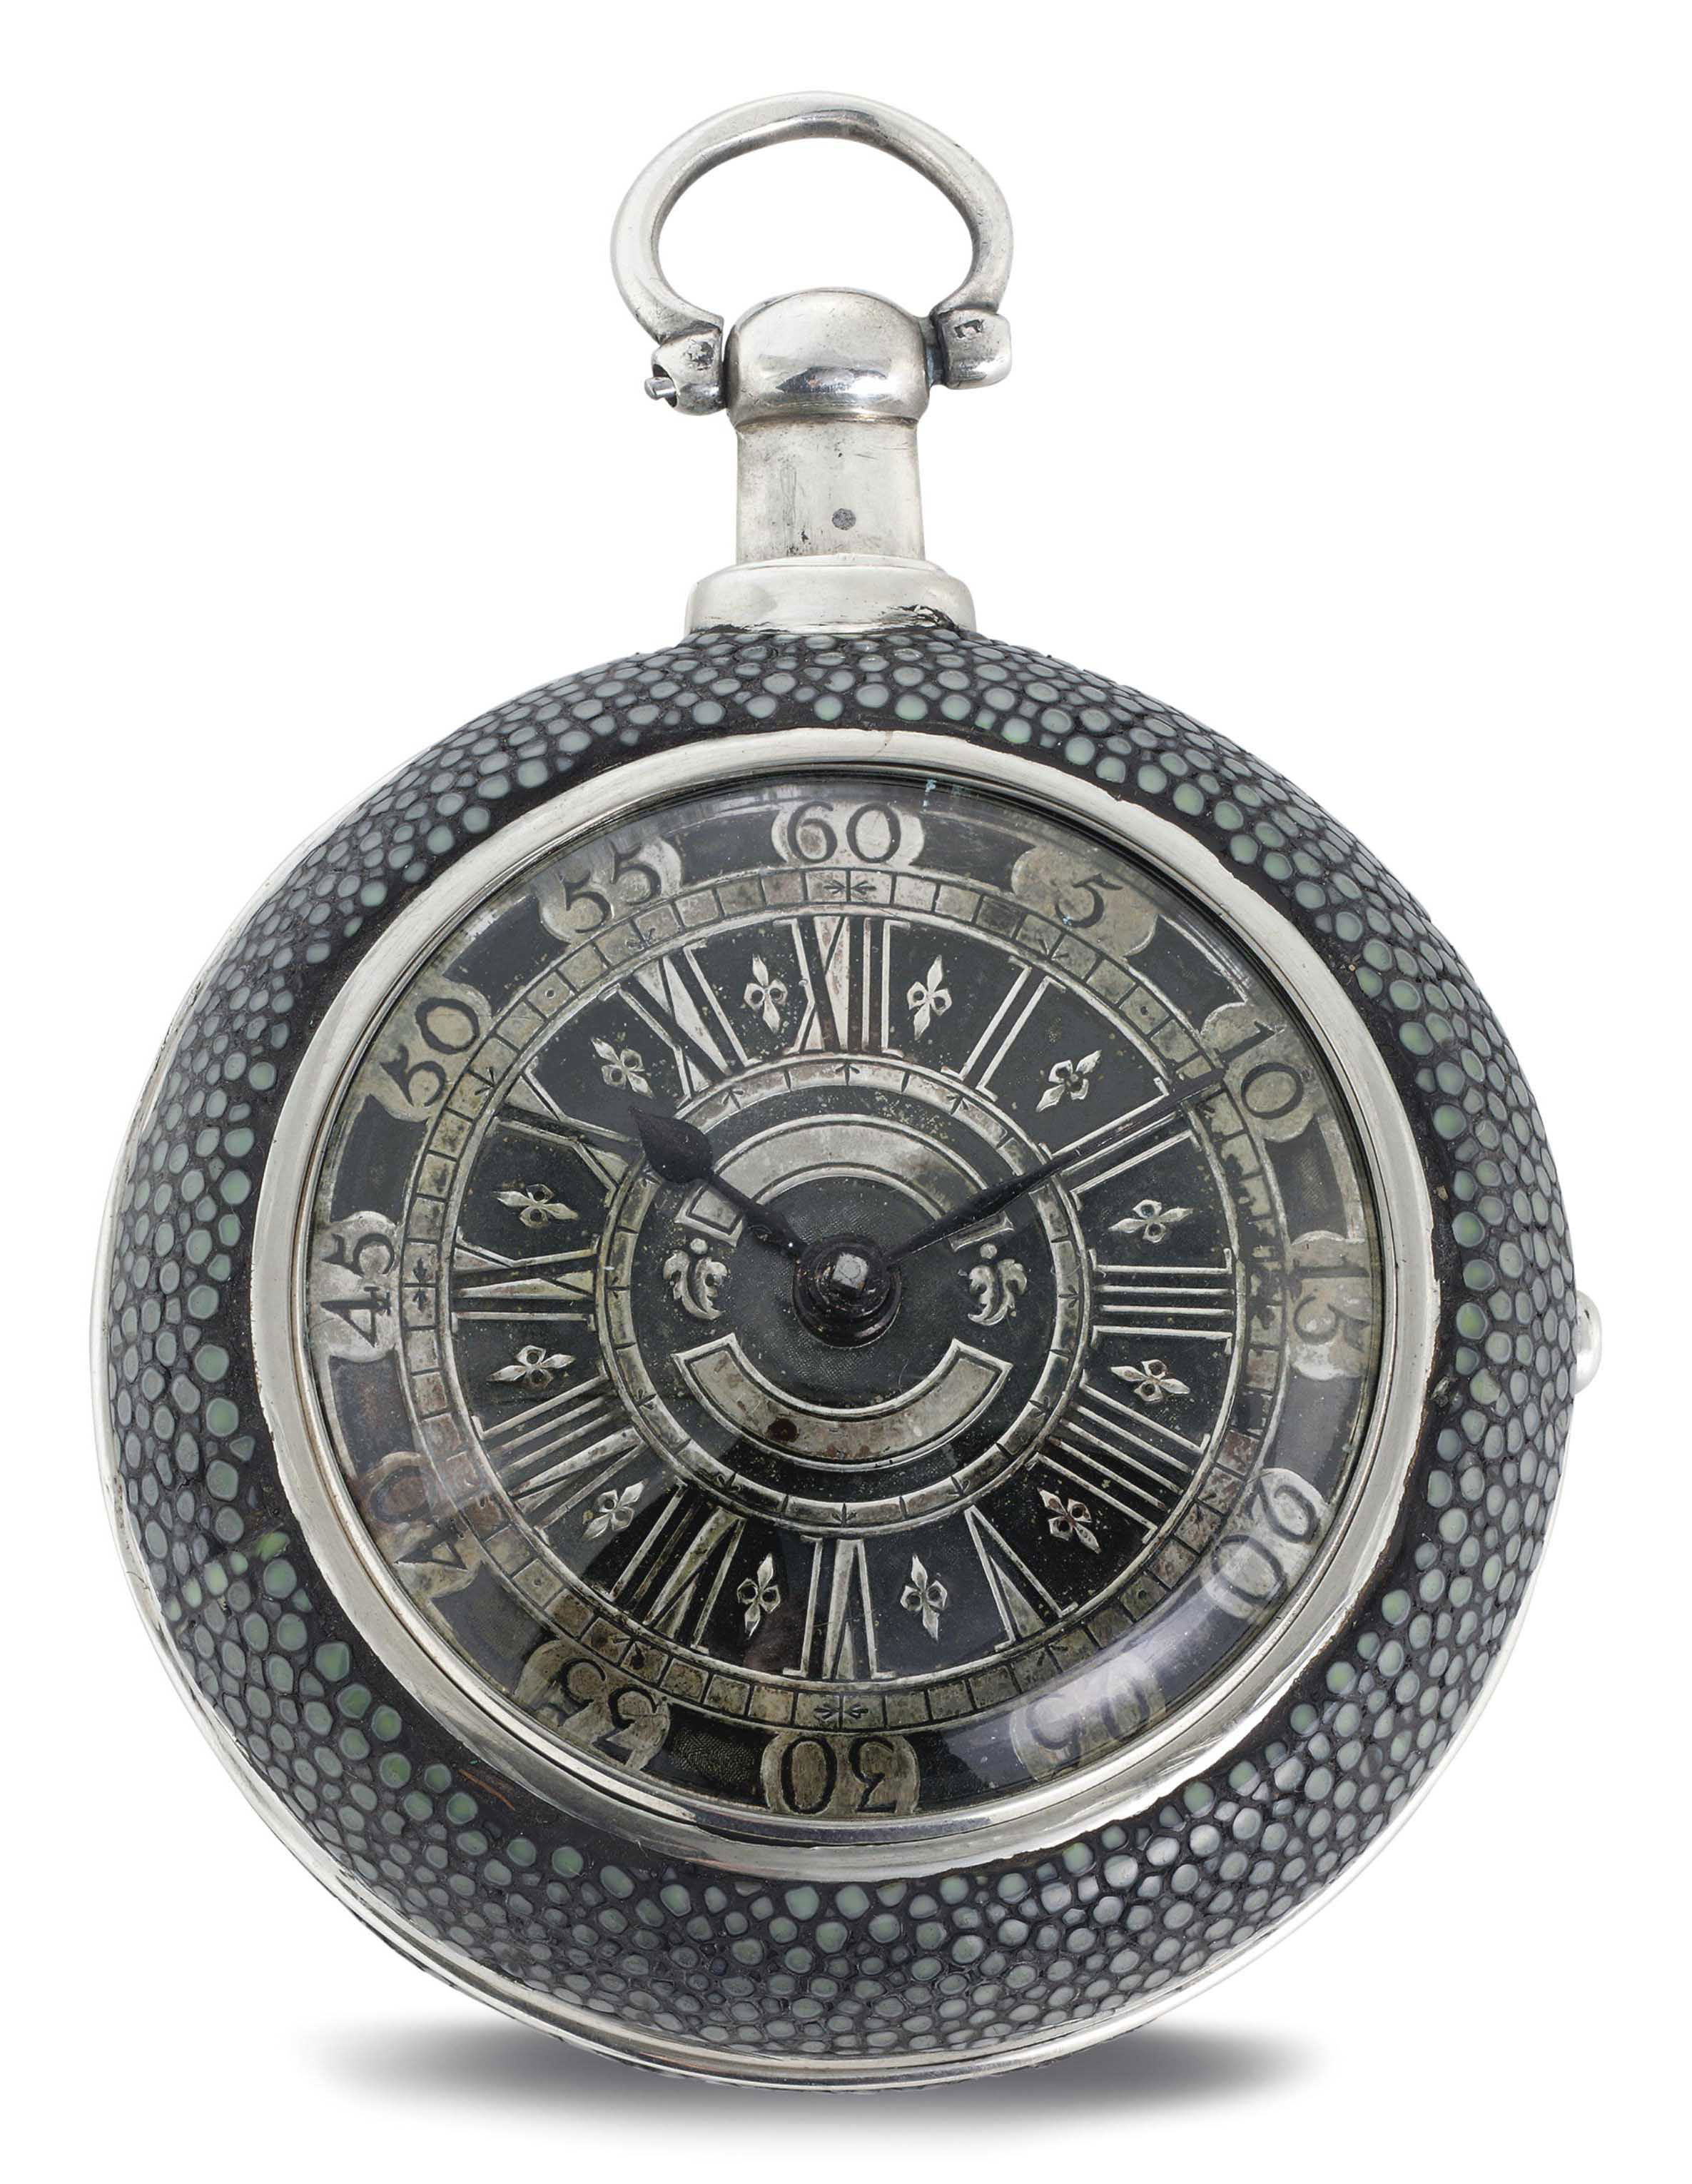 MATTHEW & THOMAS DUTTON. A REPEATING VERGE WATCH WITH ASSOCIATED SHAGREEN CASE